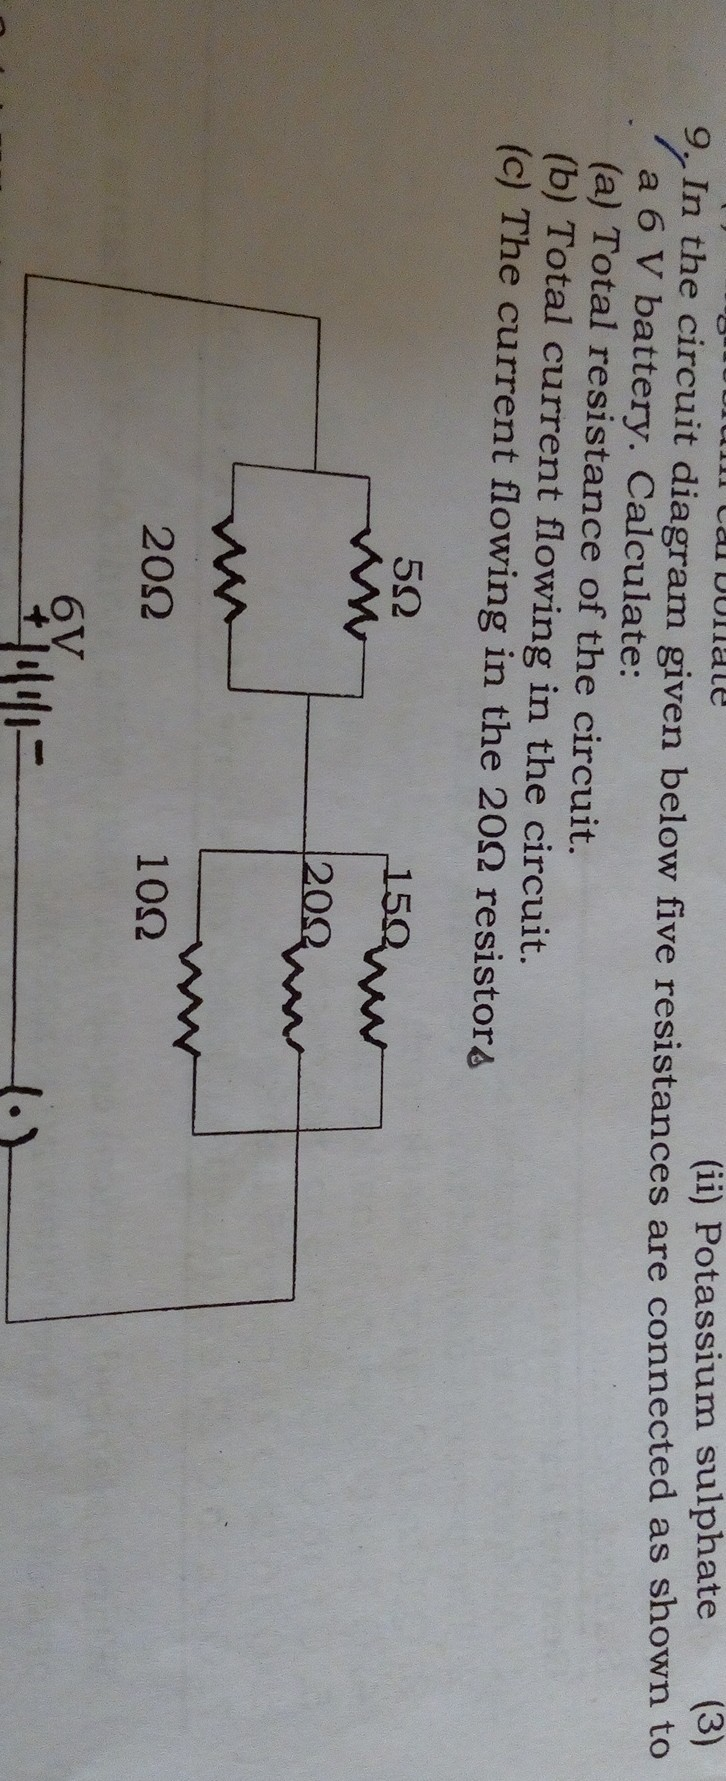 In The Circuit Diagram Given Below 5 Resistance Is Connected As Parallel Download